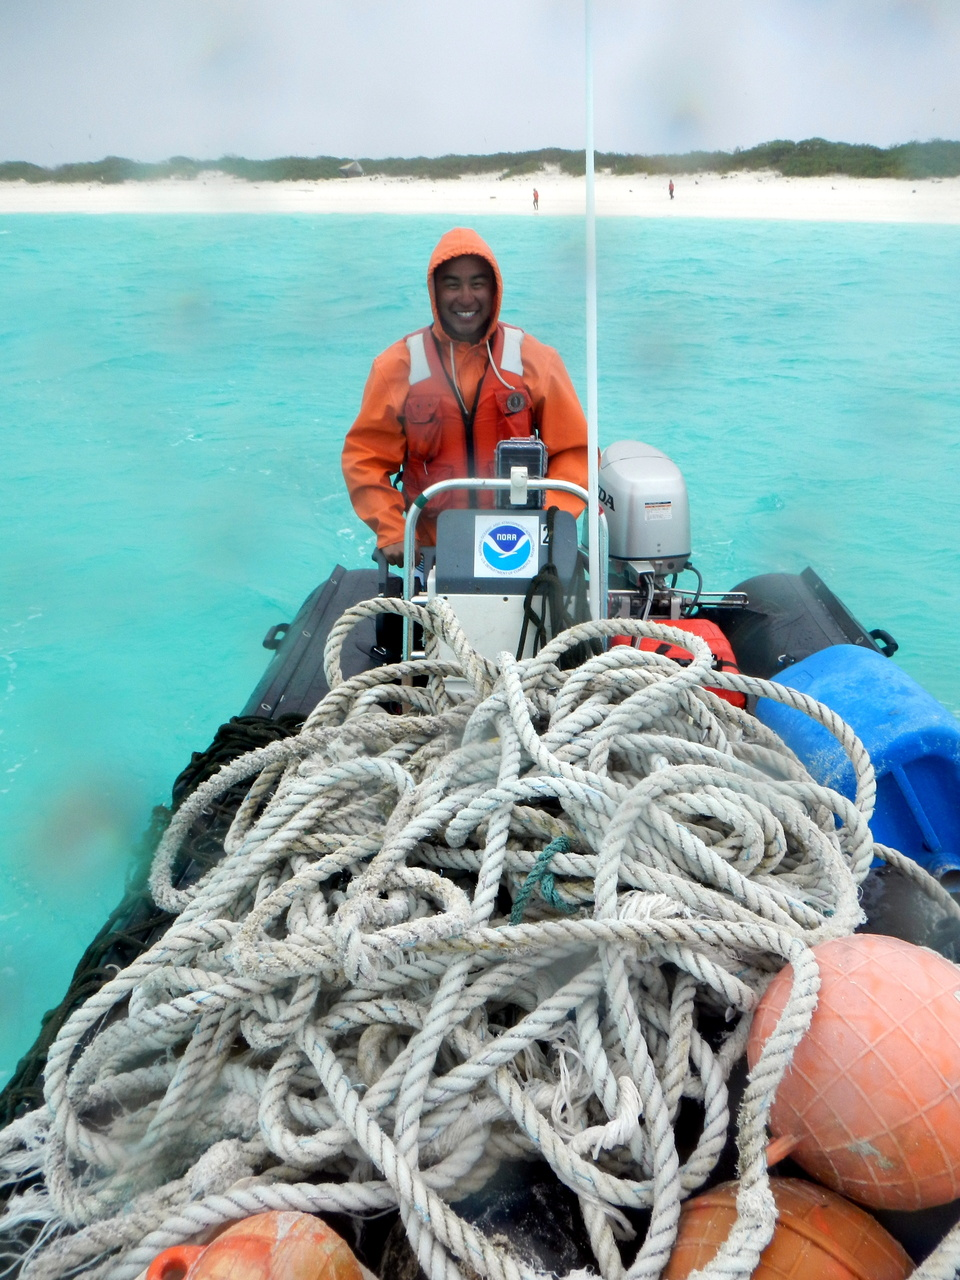 NOAA Coral Reef Ecosystem Program Marine Debris team lead, James Marioka, navigates one of the inflatable boats full of derelict fishing nets away from Kure Atoll.  The abandoned gear will be loaded onto NOAA Ship Hi'ialakai for transport back to Honolulu along with the rest of the debris collected during the mission. Photo: NOAA Fisheries